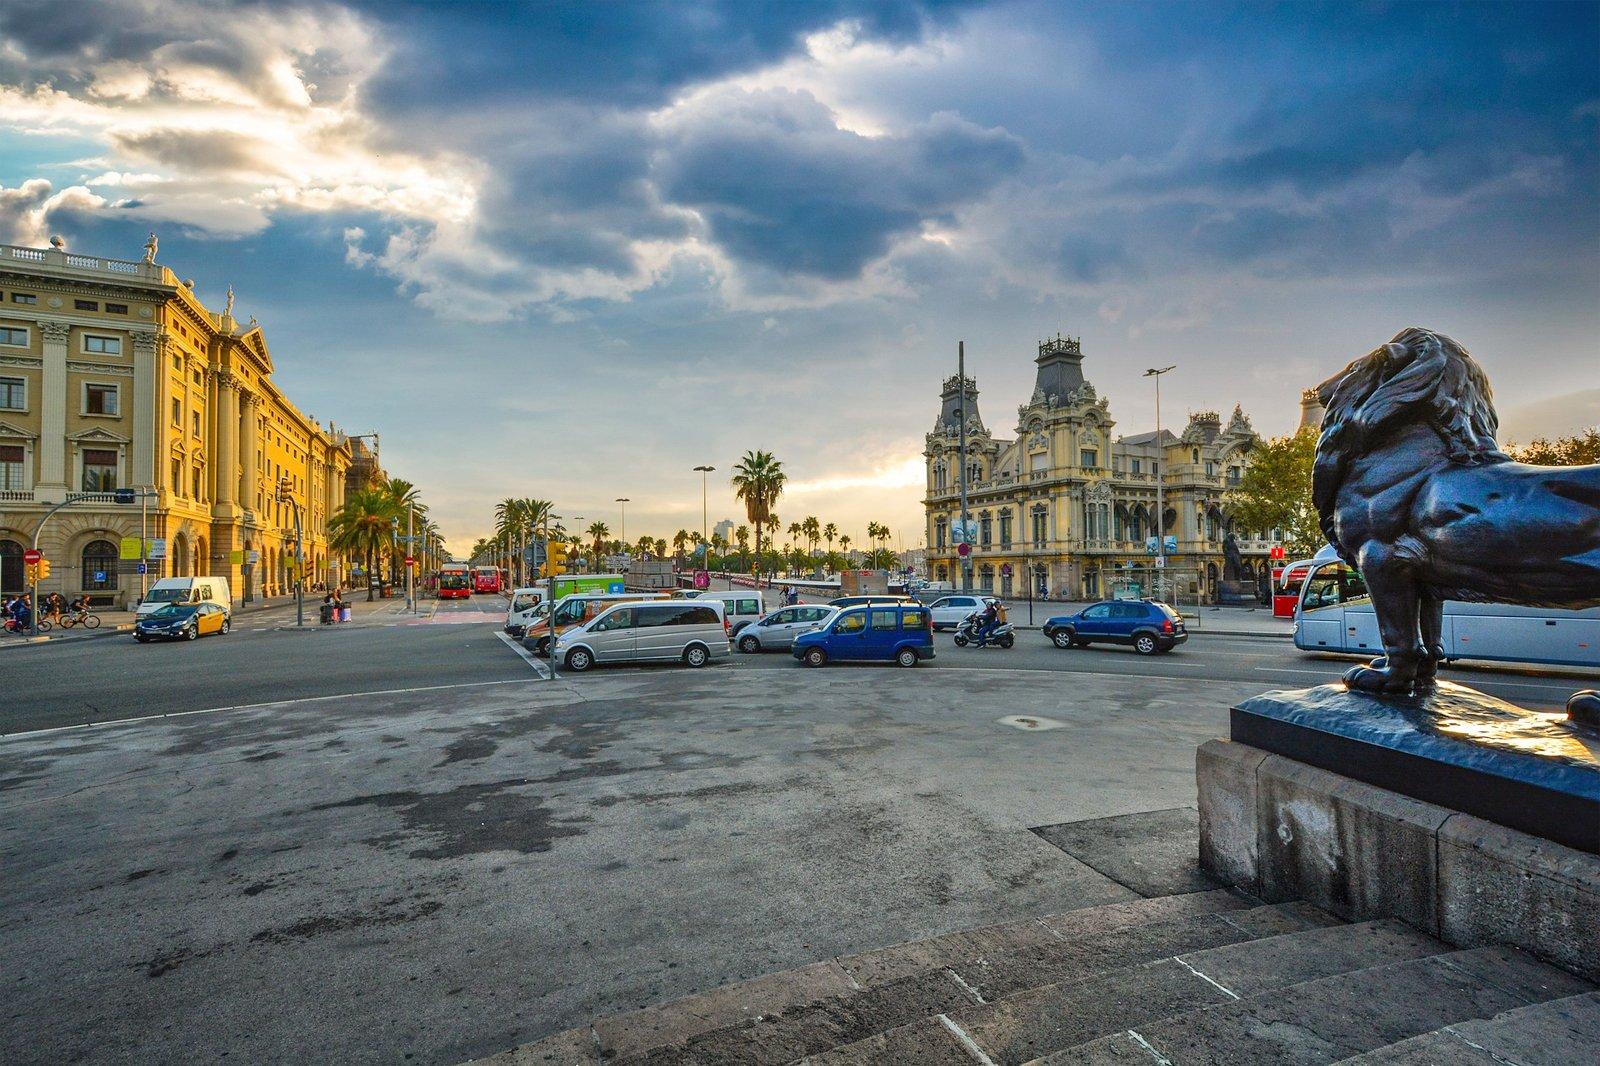 9 Fun Facts About Barcelona - Fun and Quirky Facts about the